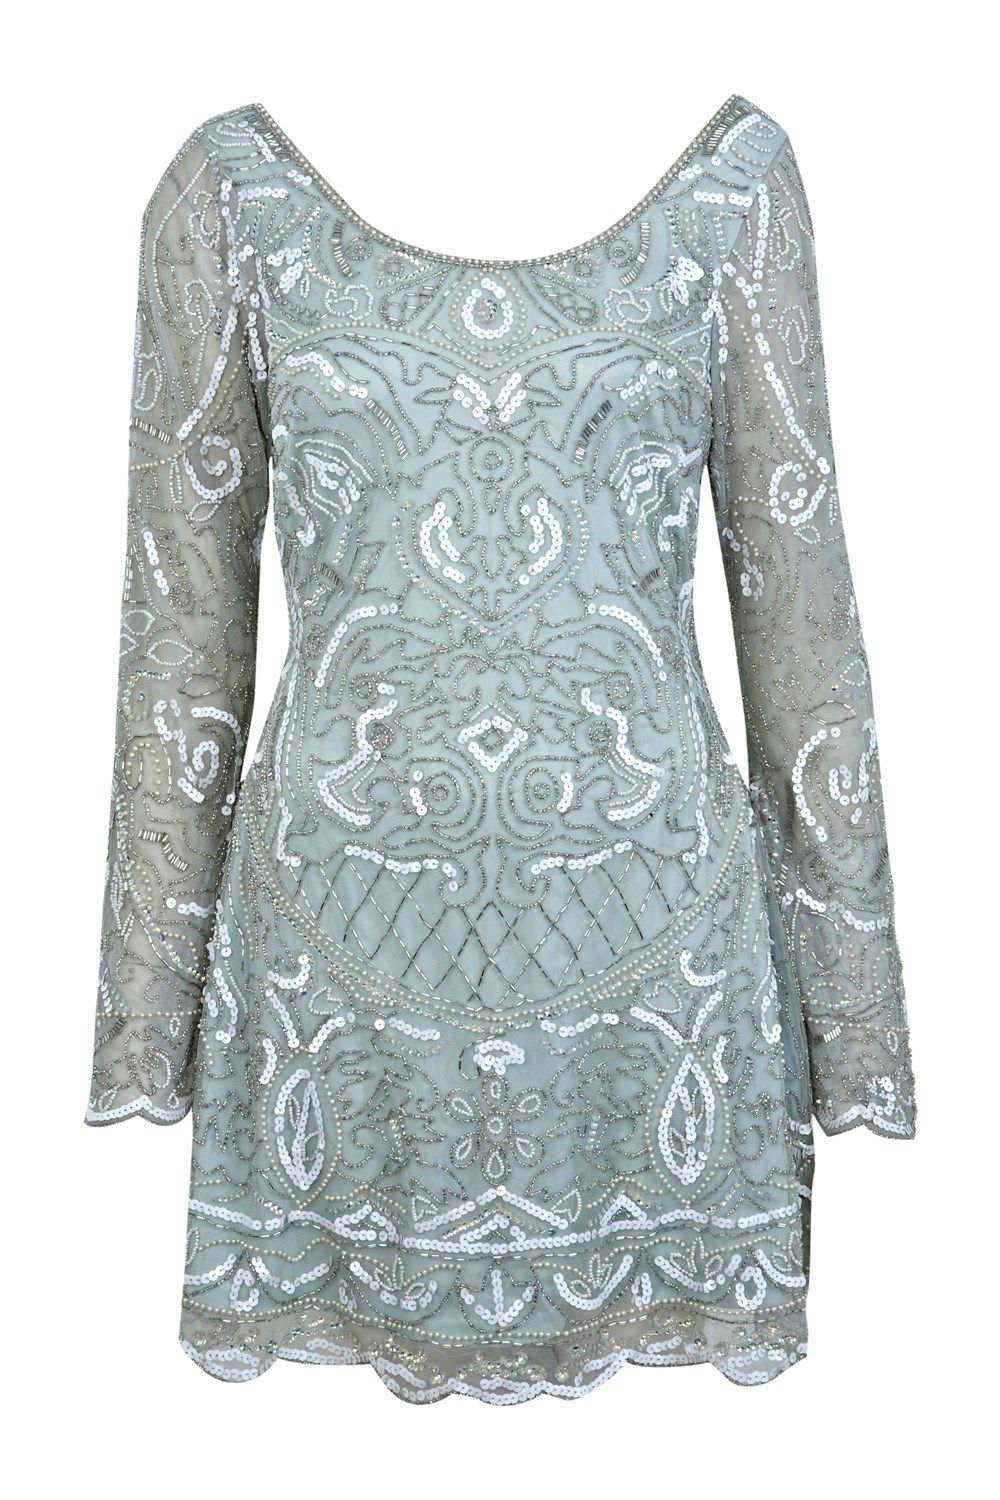 15ddc96522 dresses - Big Sleeve Embroidered Dress - Smith   Caughey s